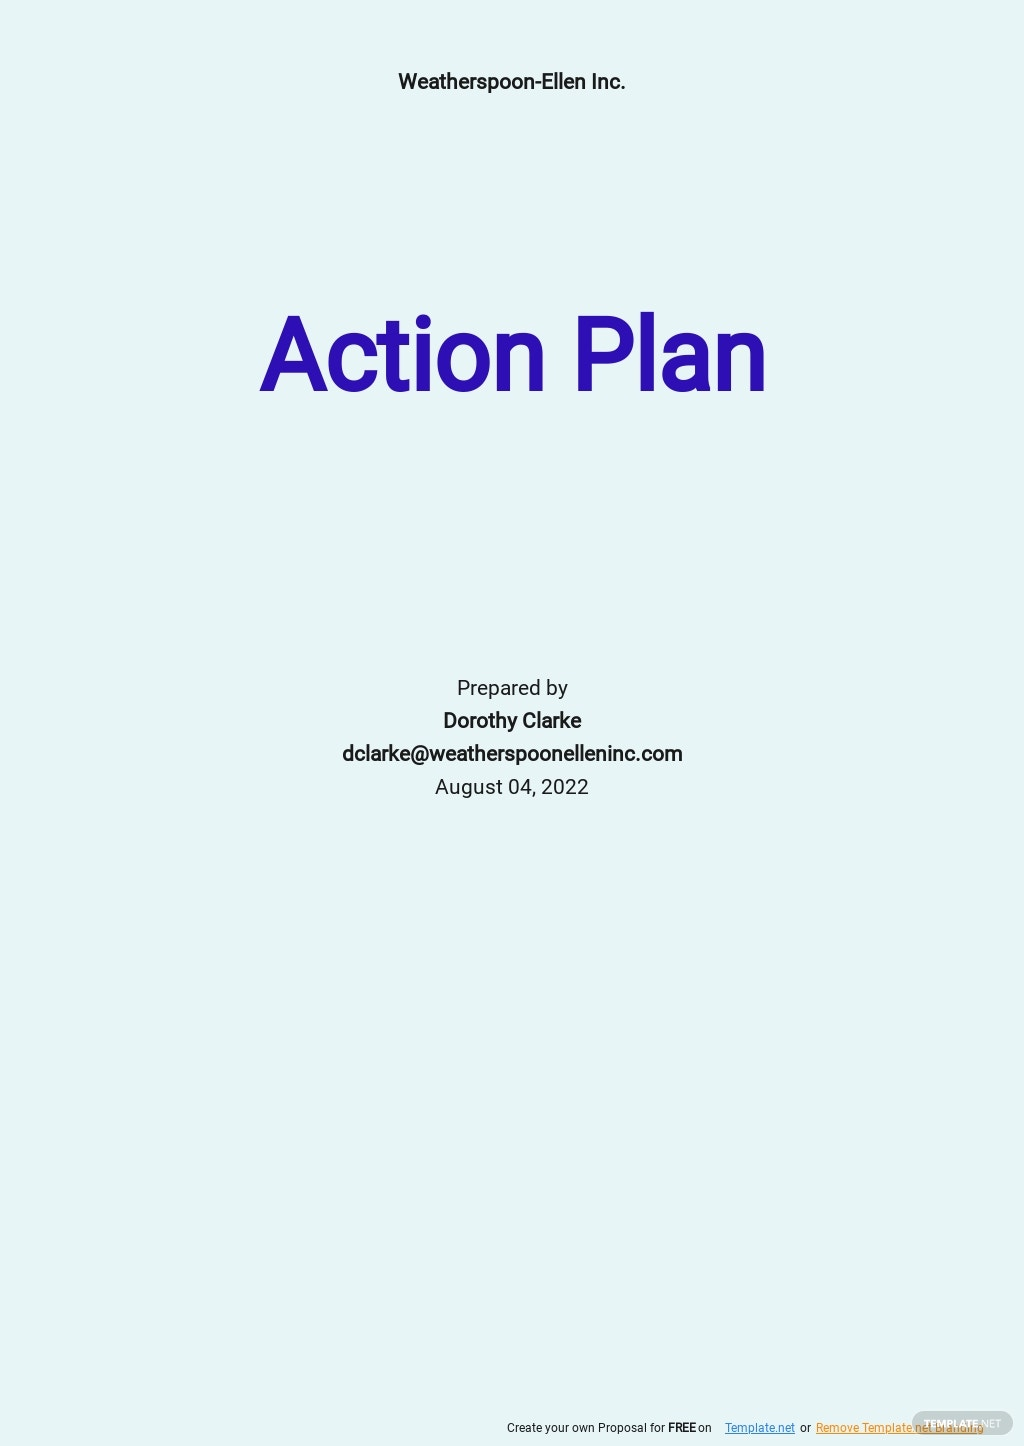 Daily Sales Action Plan Template.jpe